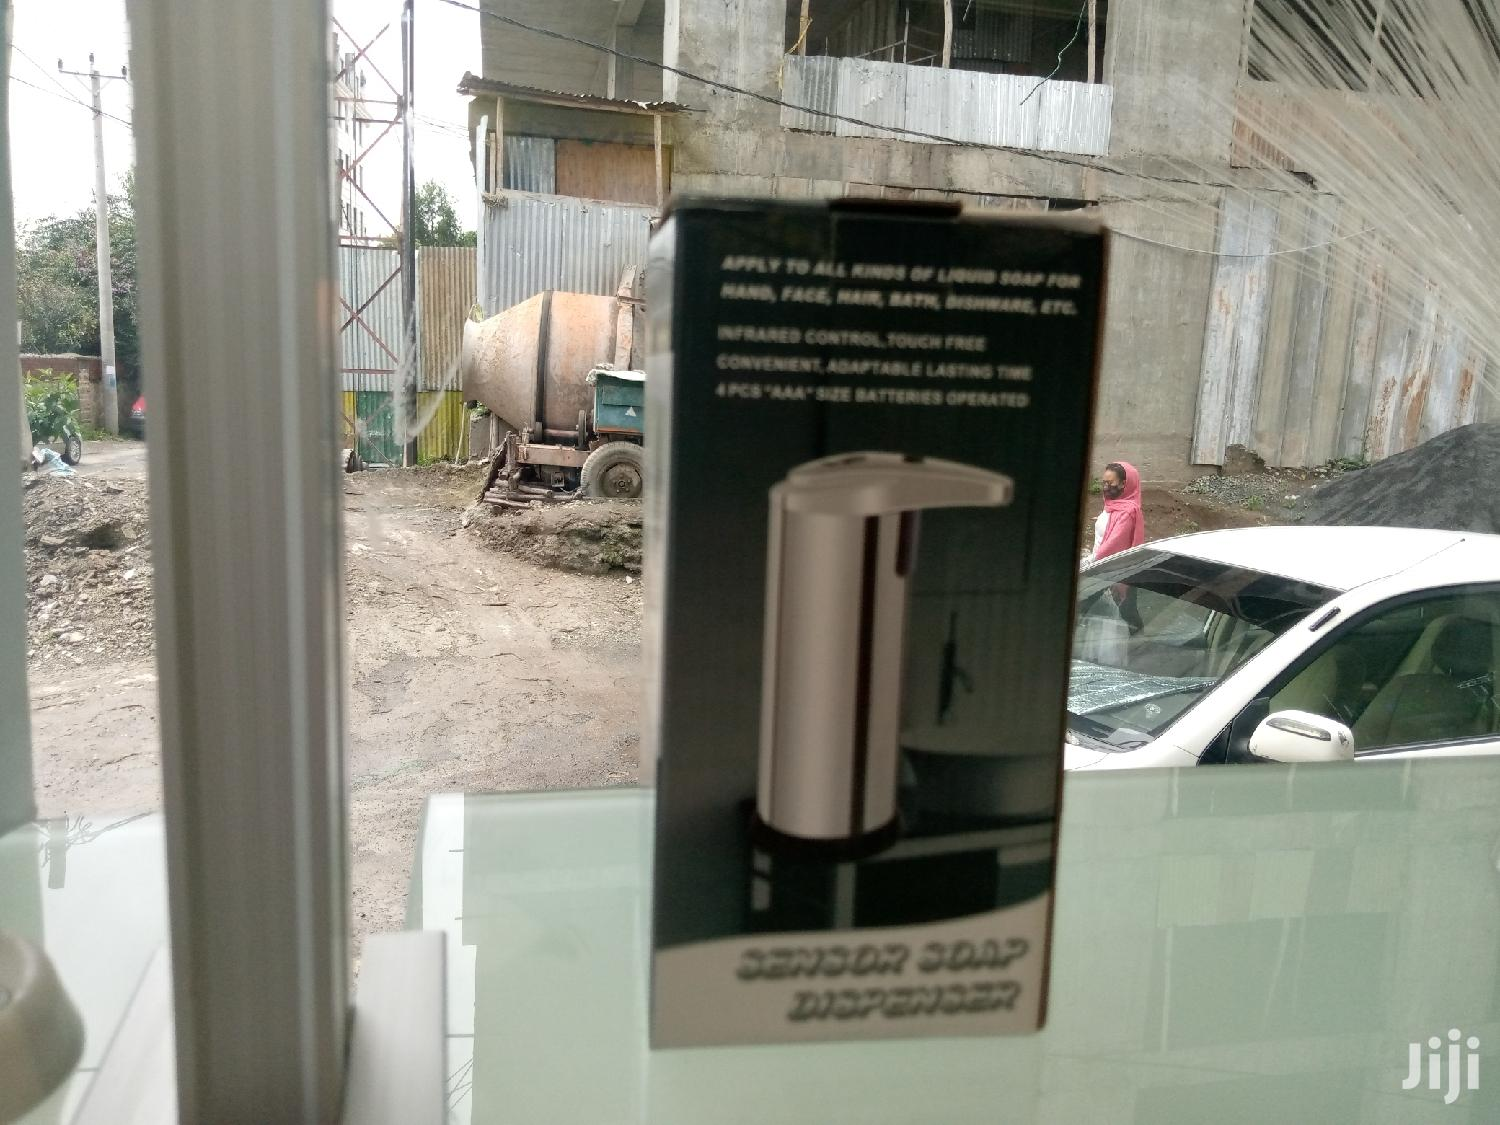 Automatic Sensor Sanitizer   Home Accessories for sale in Nifas Silk-Lafto, Addis Ababa, Ethiopia